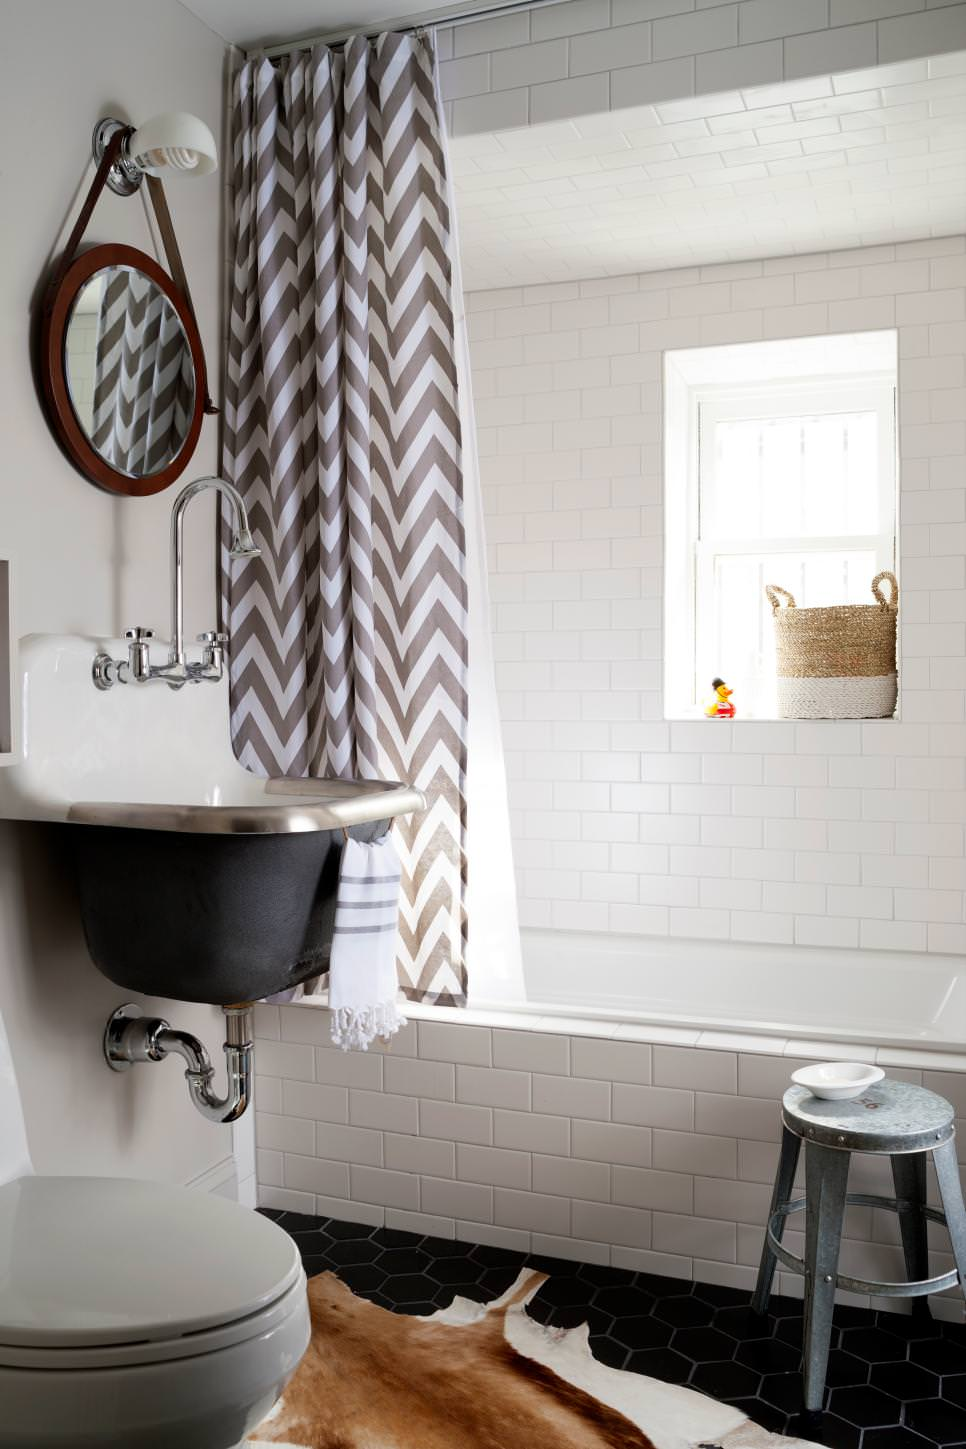 18+ Bathroom Curtain Designs, Decorating Ideas | Design ...